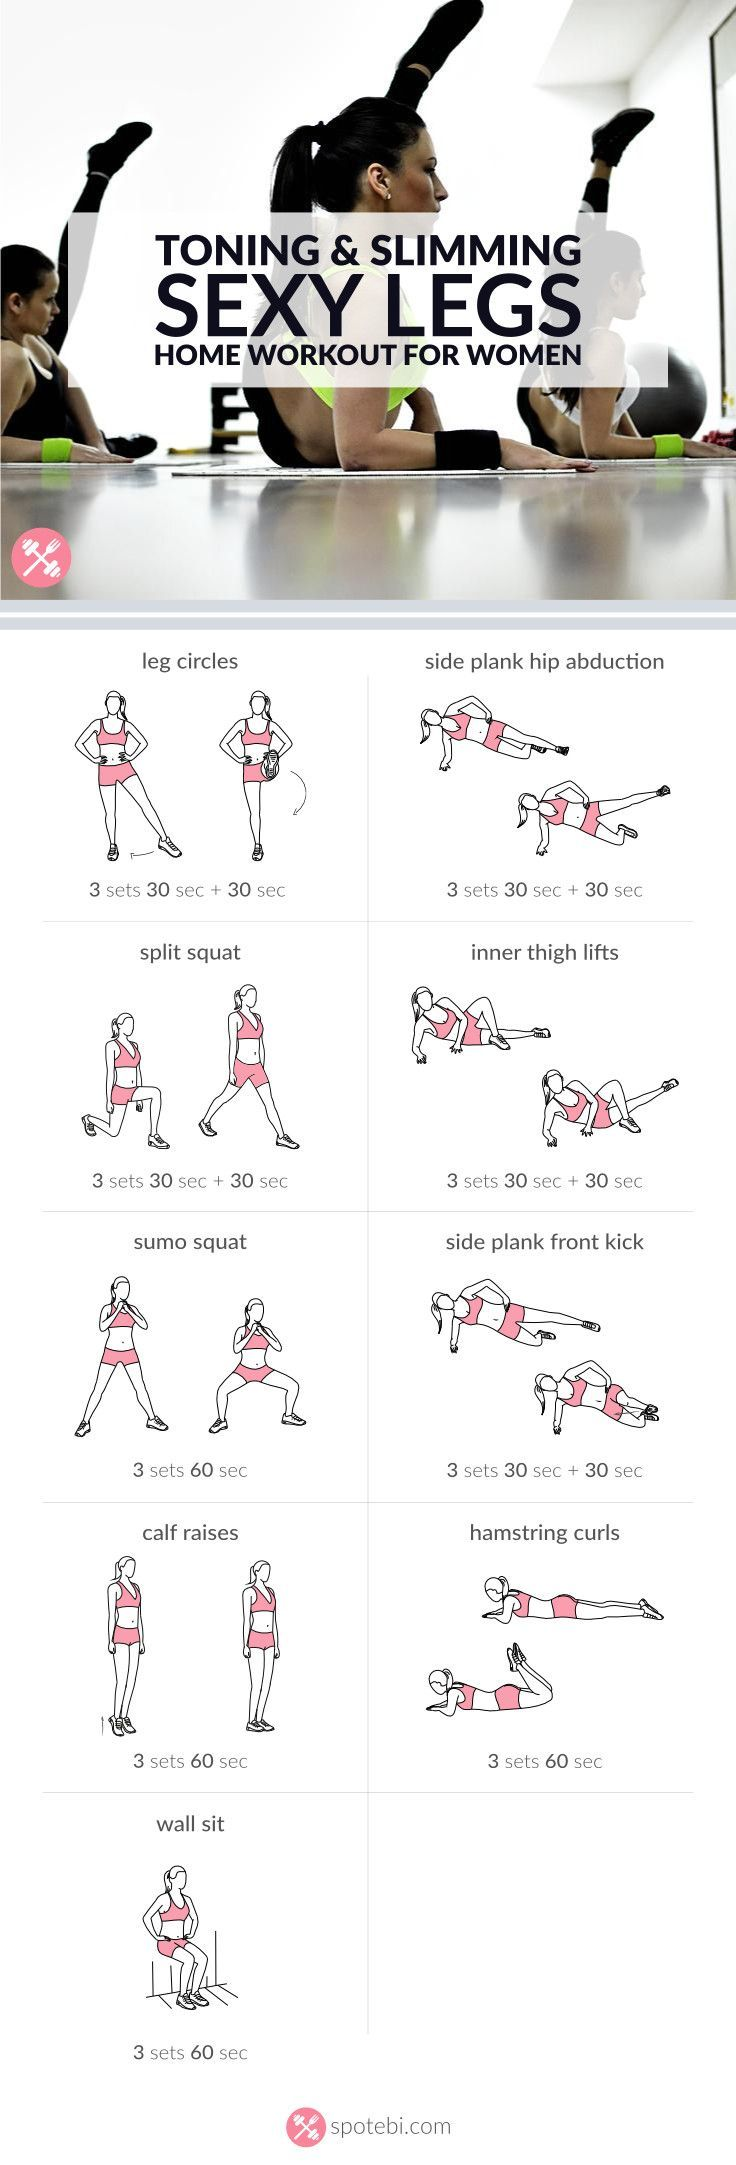 Workouts Get Lean And Strong With This Sexy Legs Workout 9 Toning